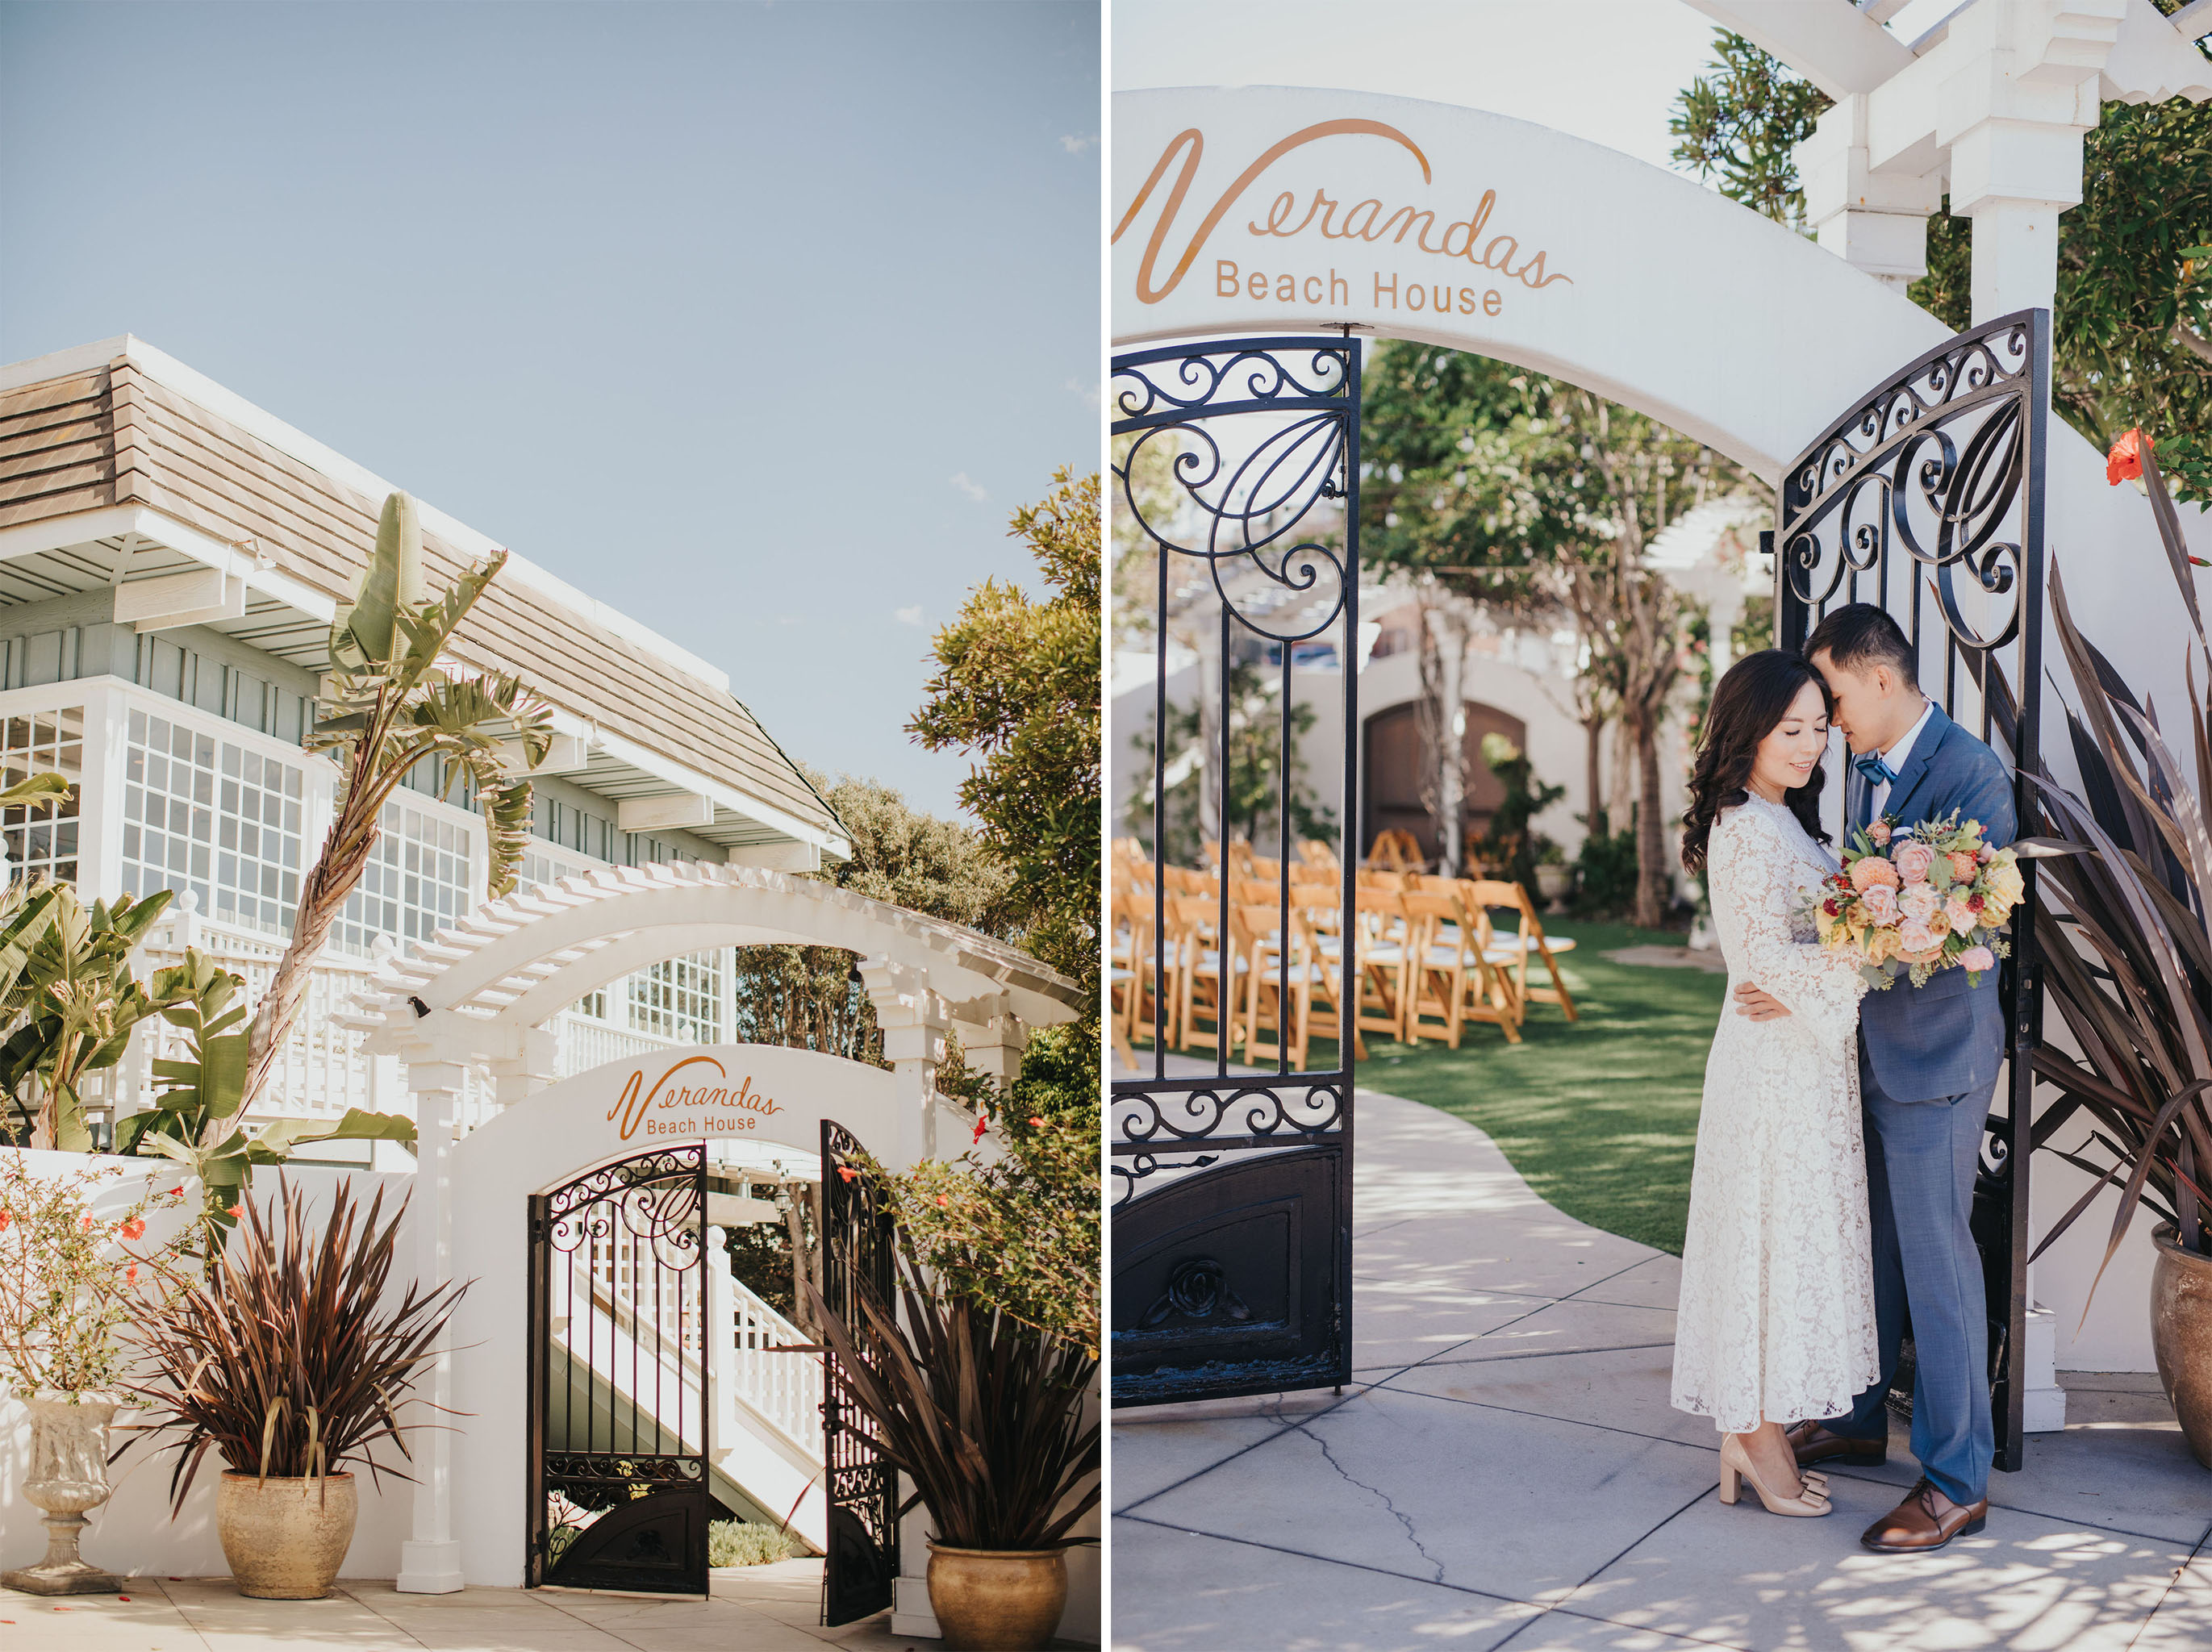 Wedding Venue | Verandas Beach House